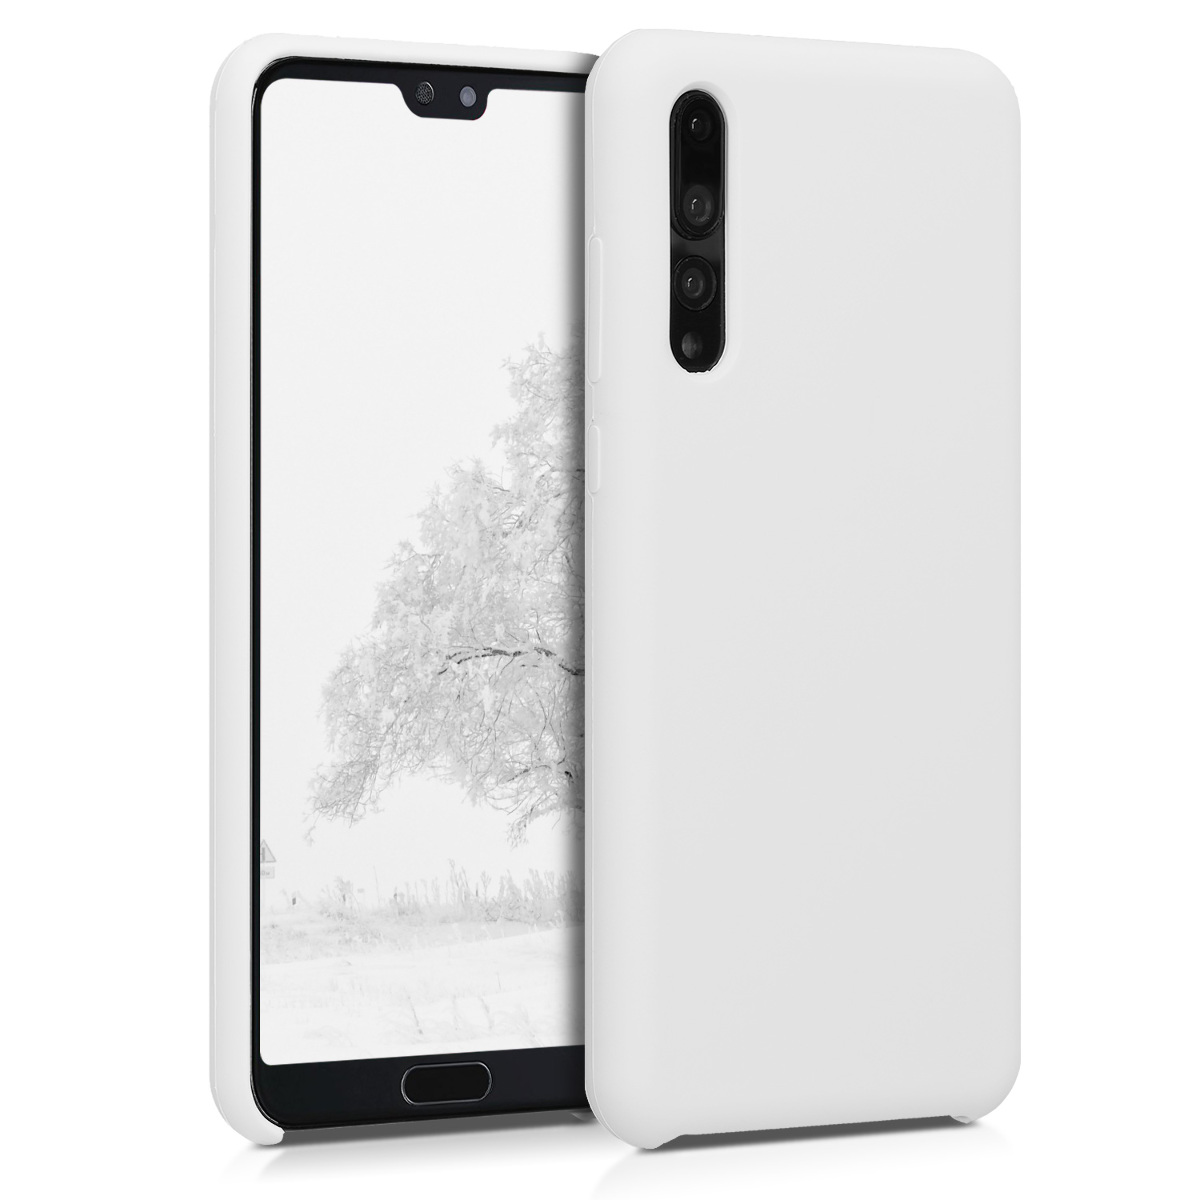 KW Θήκη Σιλικόνης Huawei P20 Pro - Soft Flexible Rubber Protective Cover - White (47706.02)